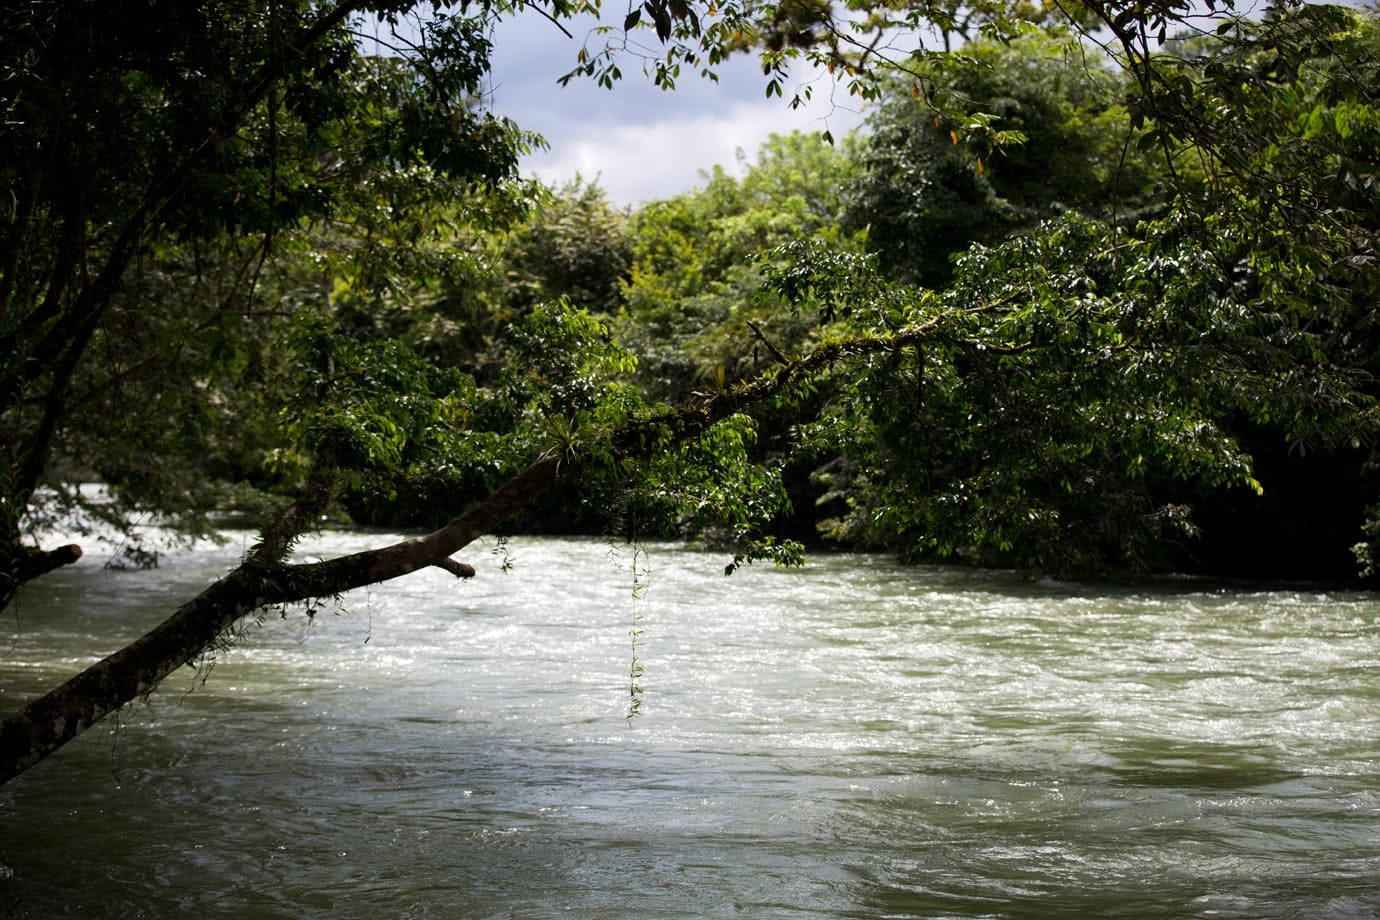 The rushing river in Lanquin